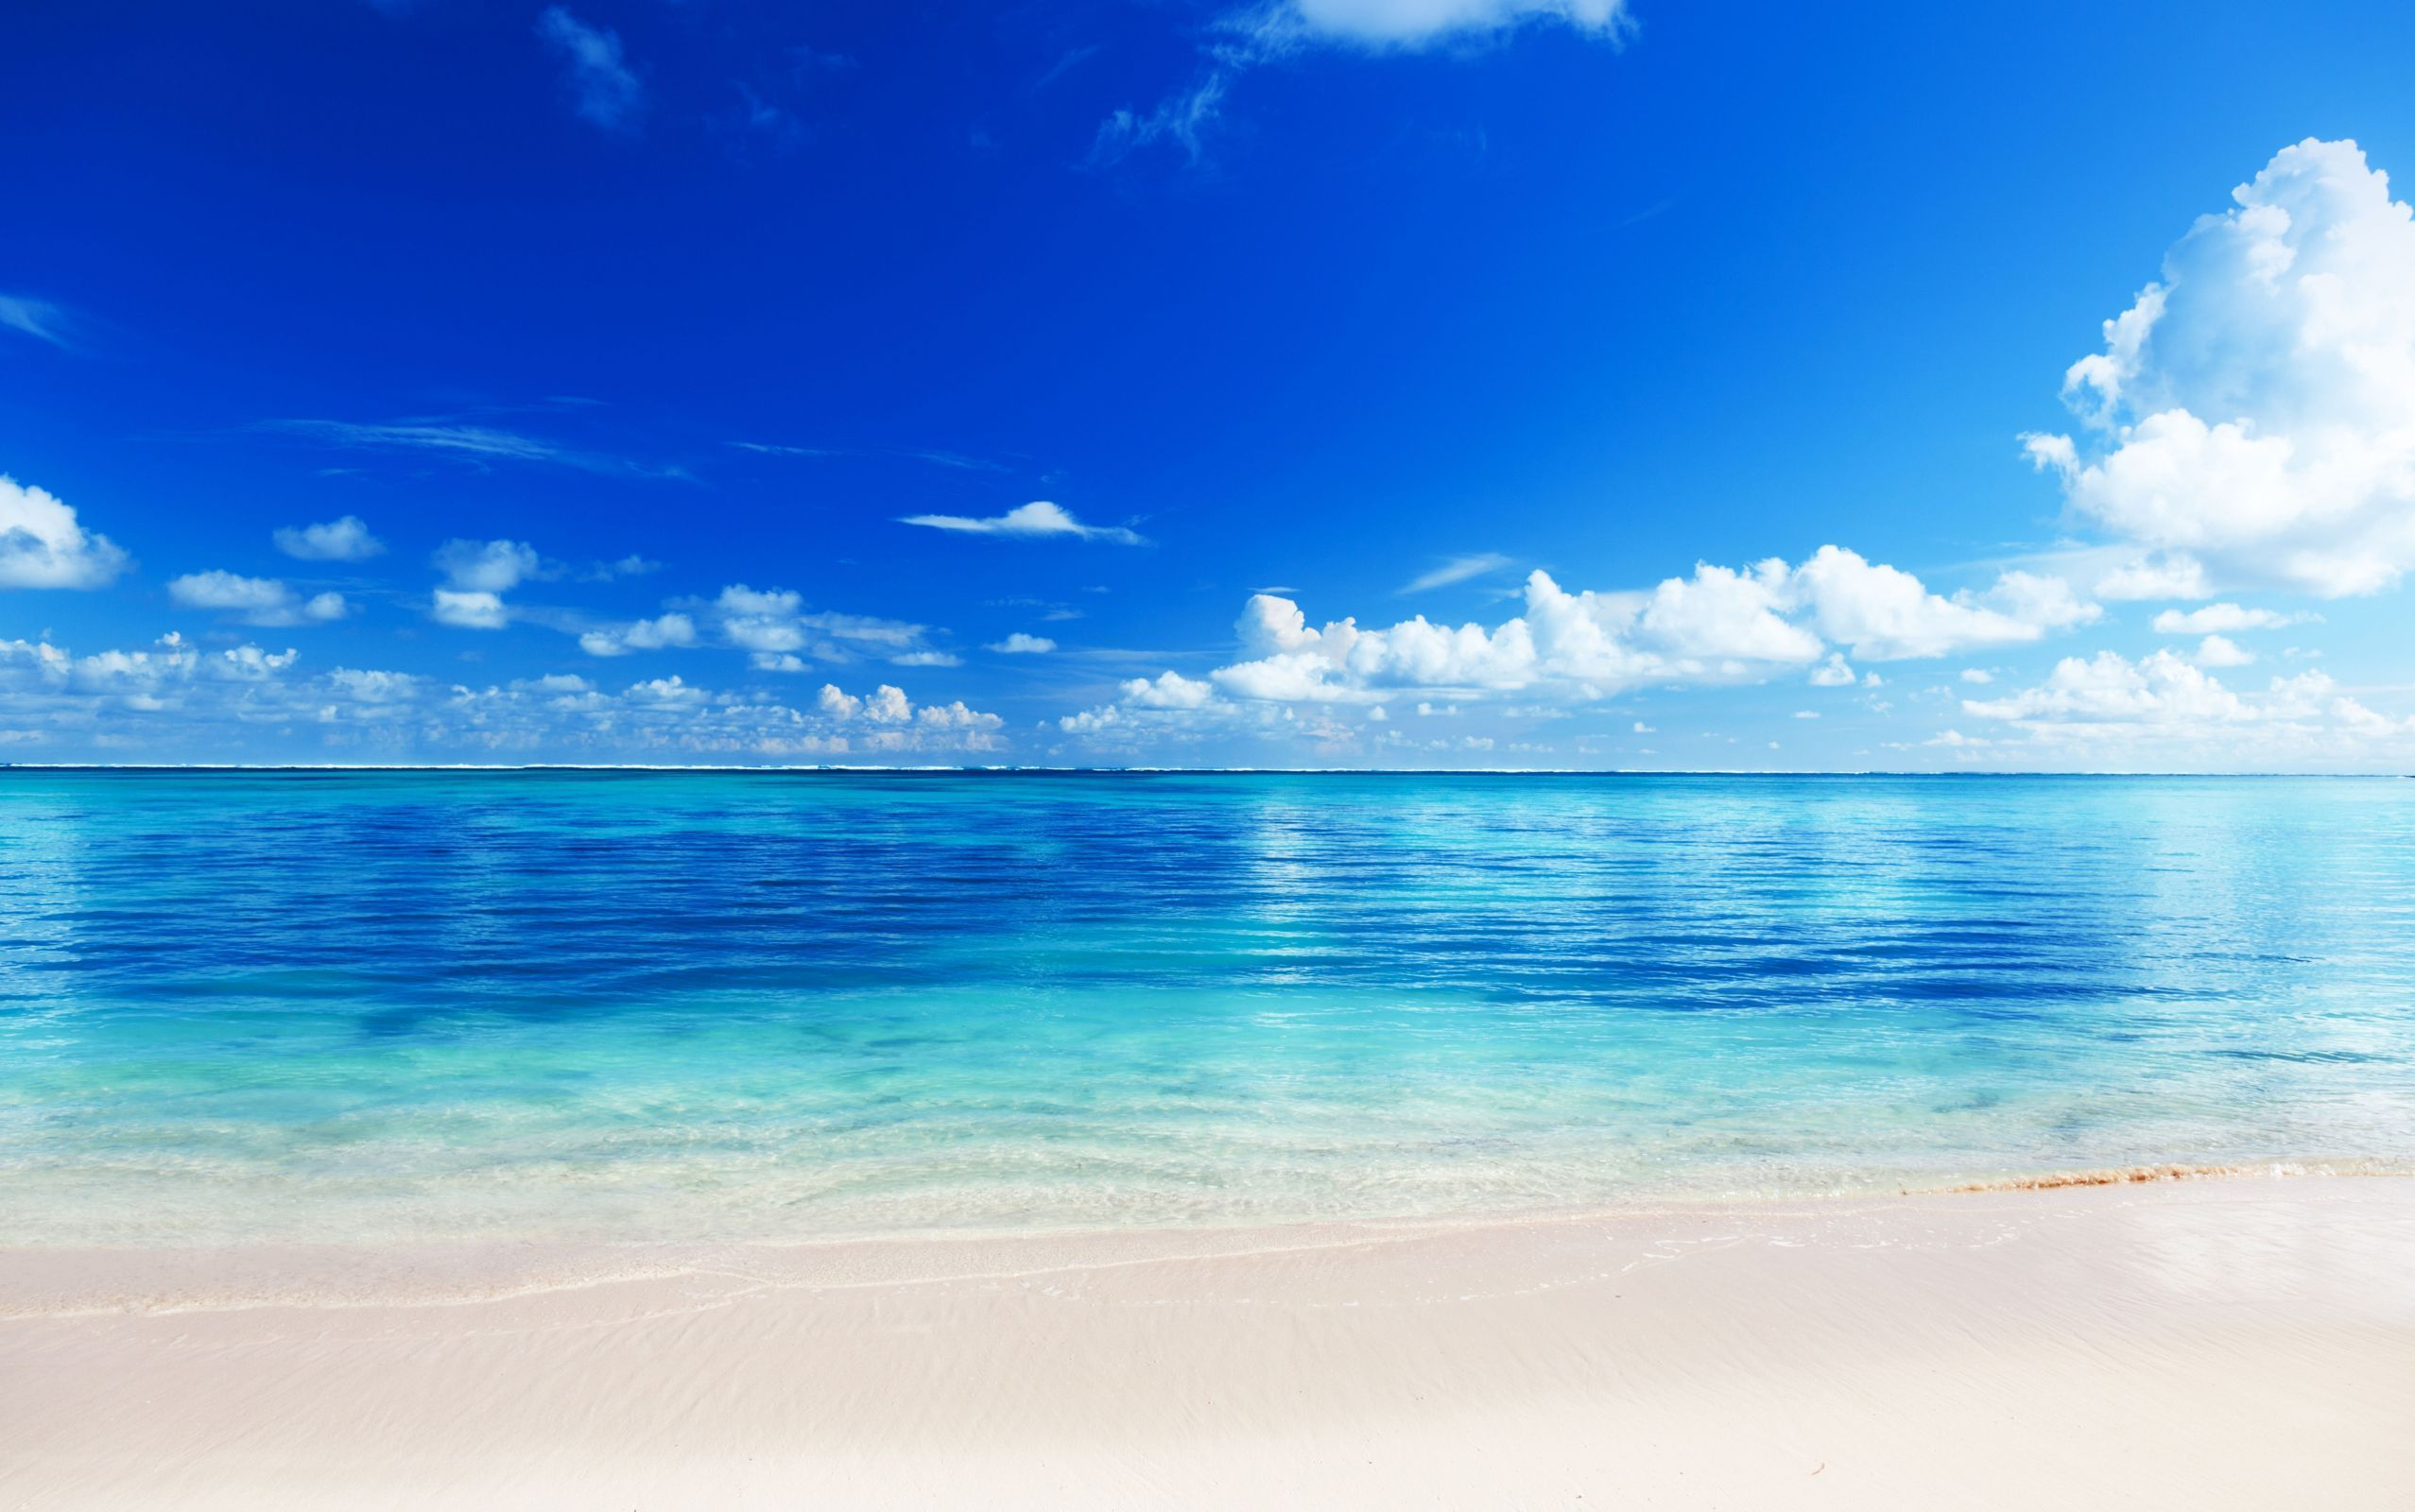 beach wallpapers Desktop Backgrounds for HD 2555x1600